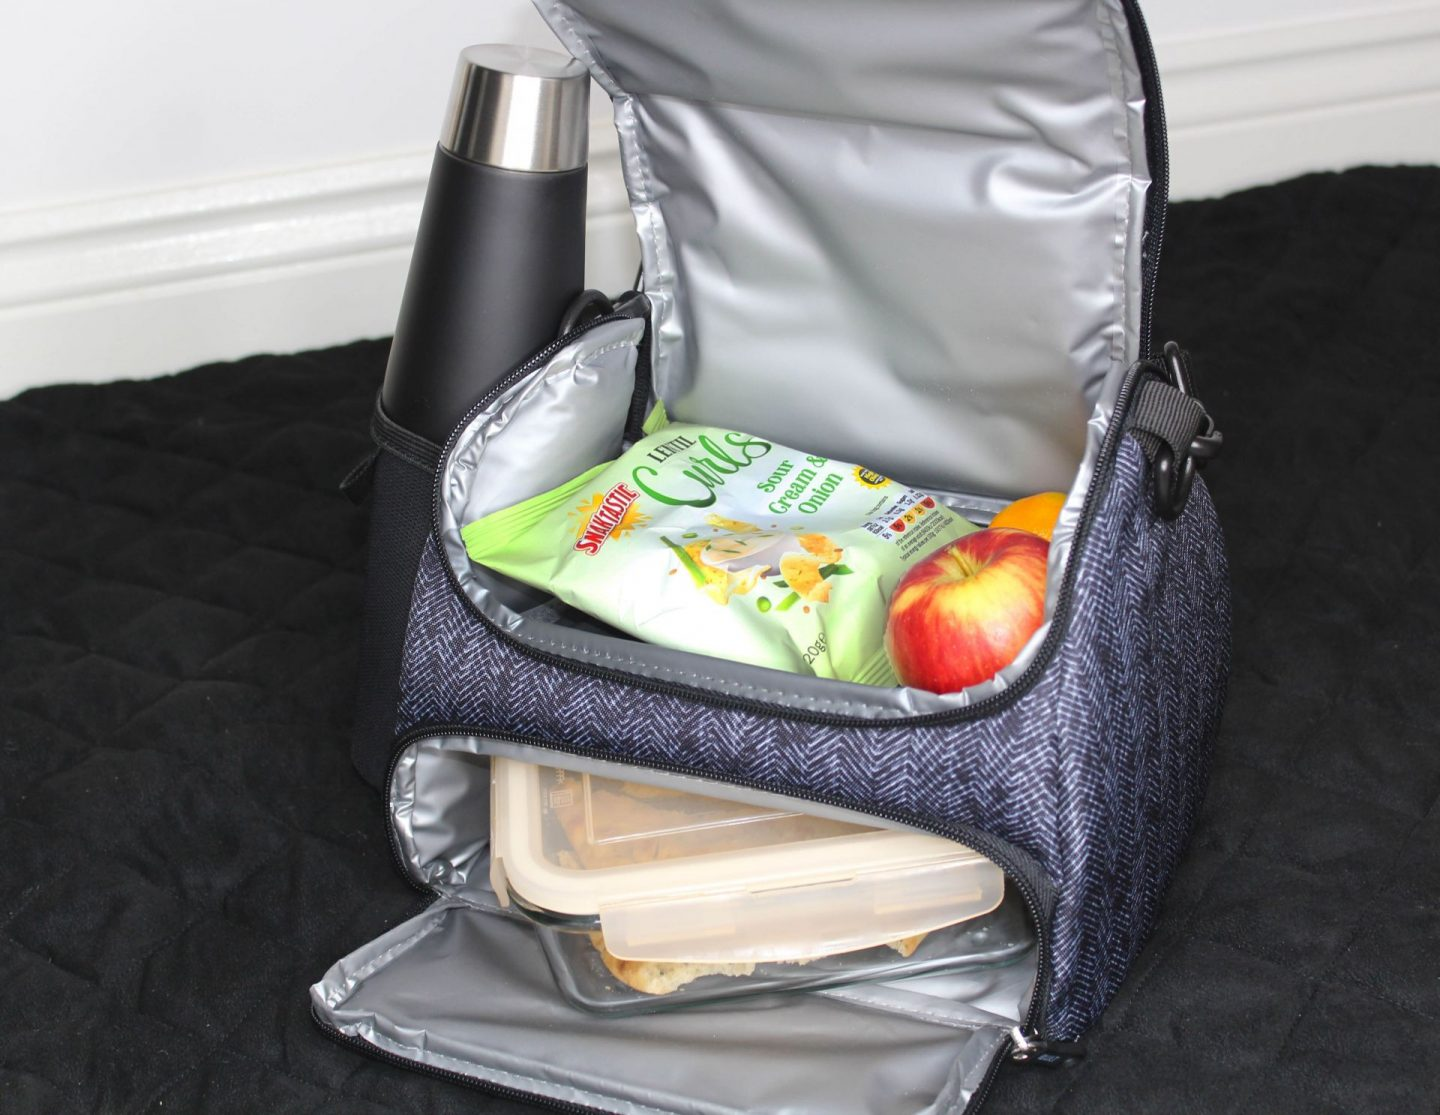 Built New York lunch bag from Kitchen Craft